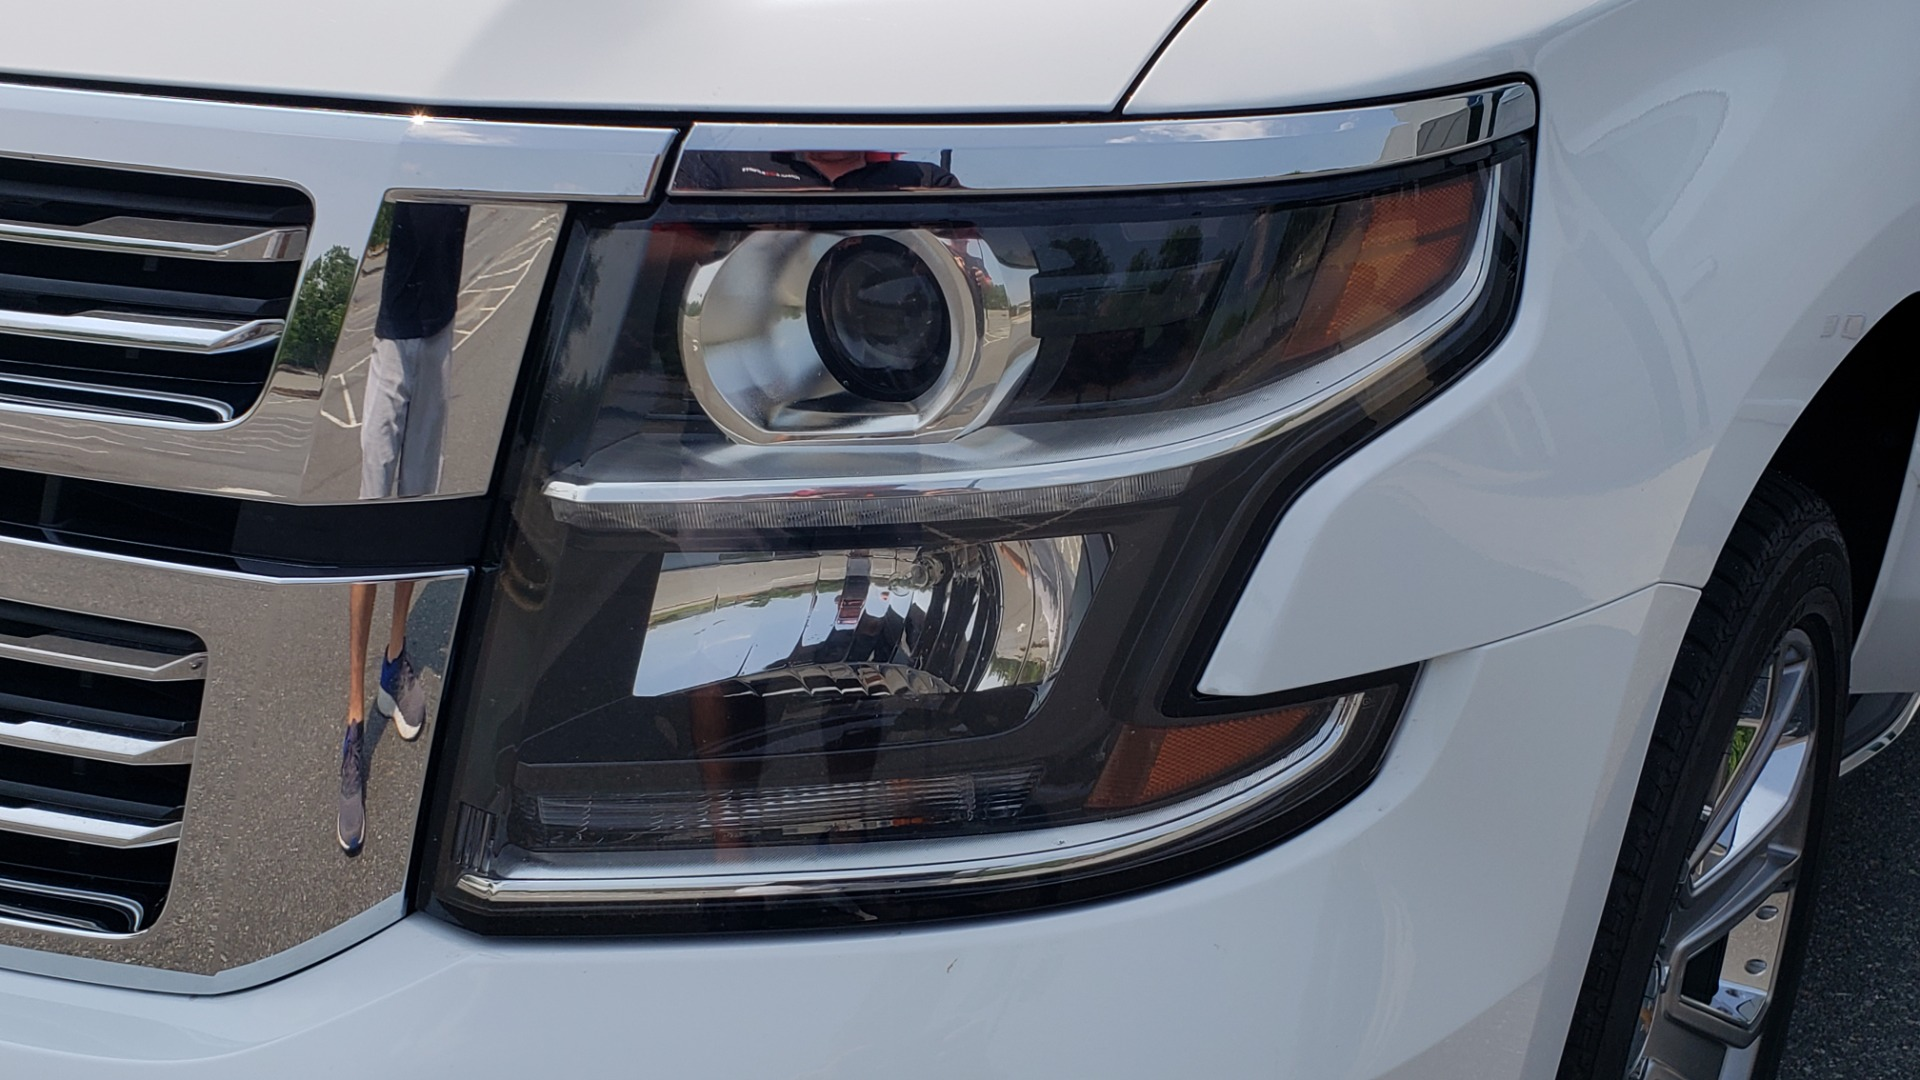 Used 2018 Chevrolet TAHOE PREMIER 4WD / NAV / SUNROOF / BOSE / 3-ROW / HUD / REARVIEW for sale $63,995 at Formula Imports in Charlotte NC 28227 27